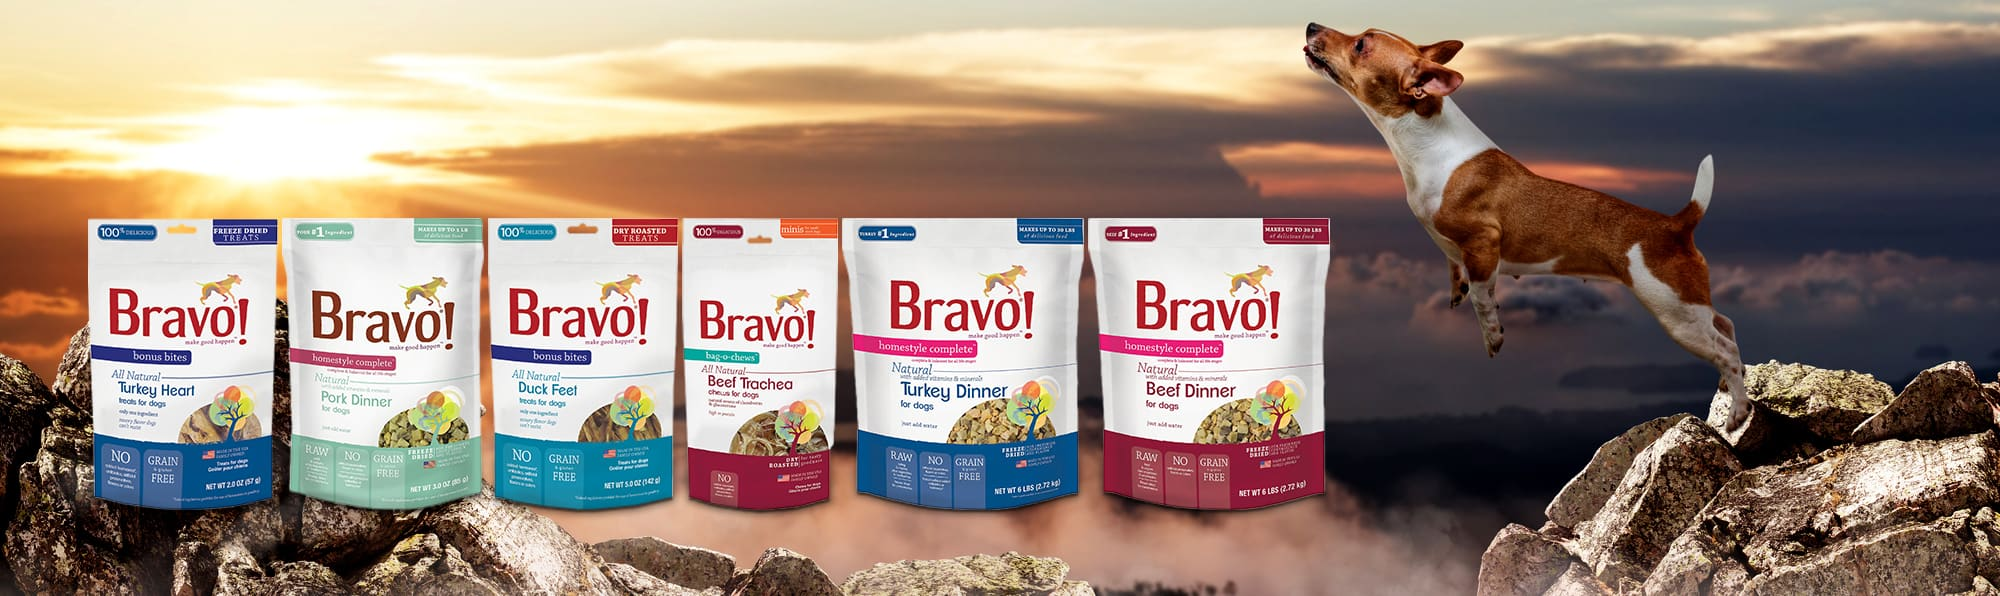 Bravo dog food reviews